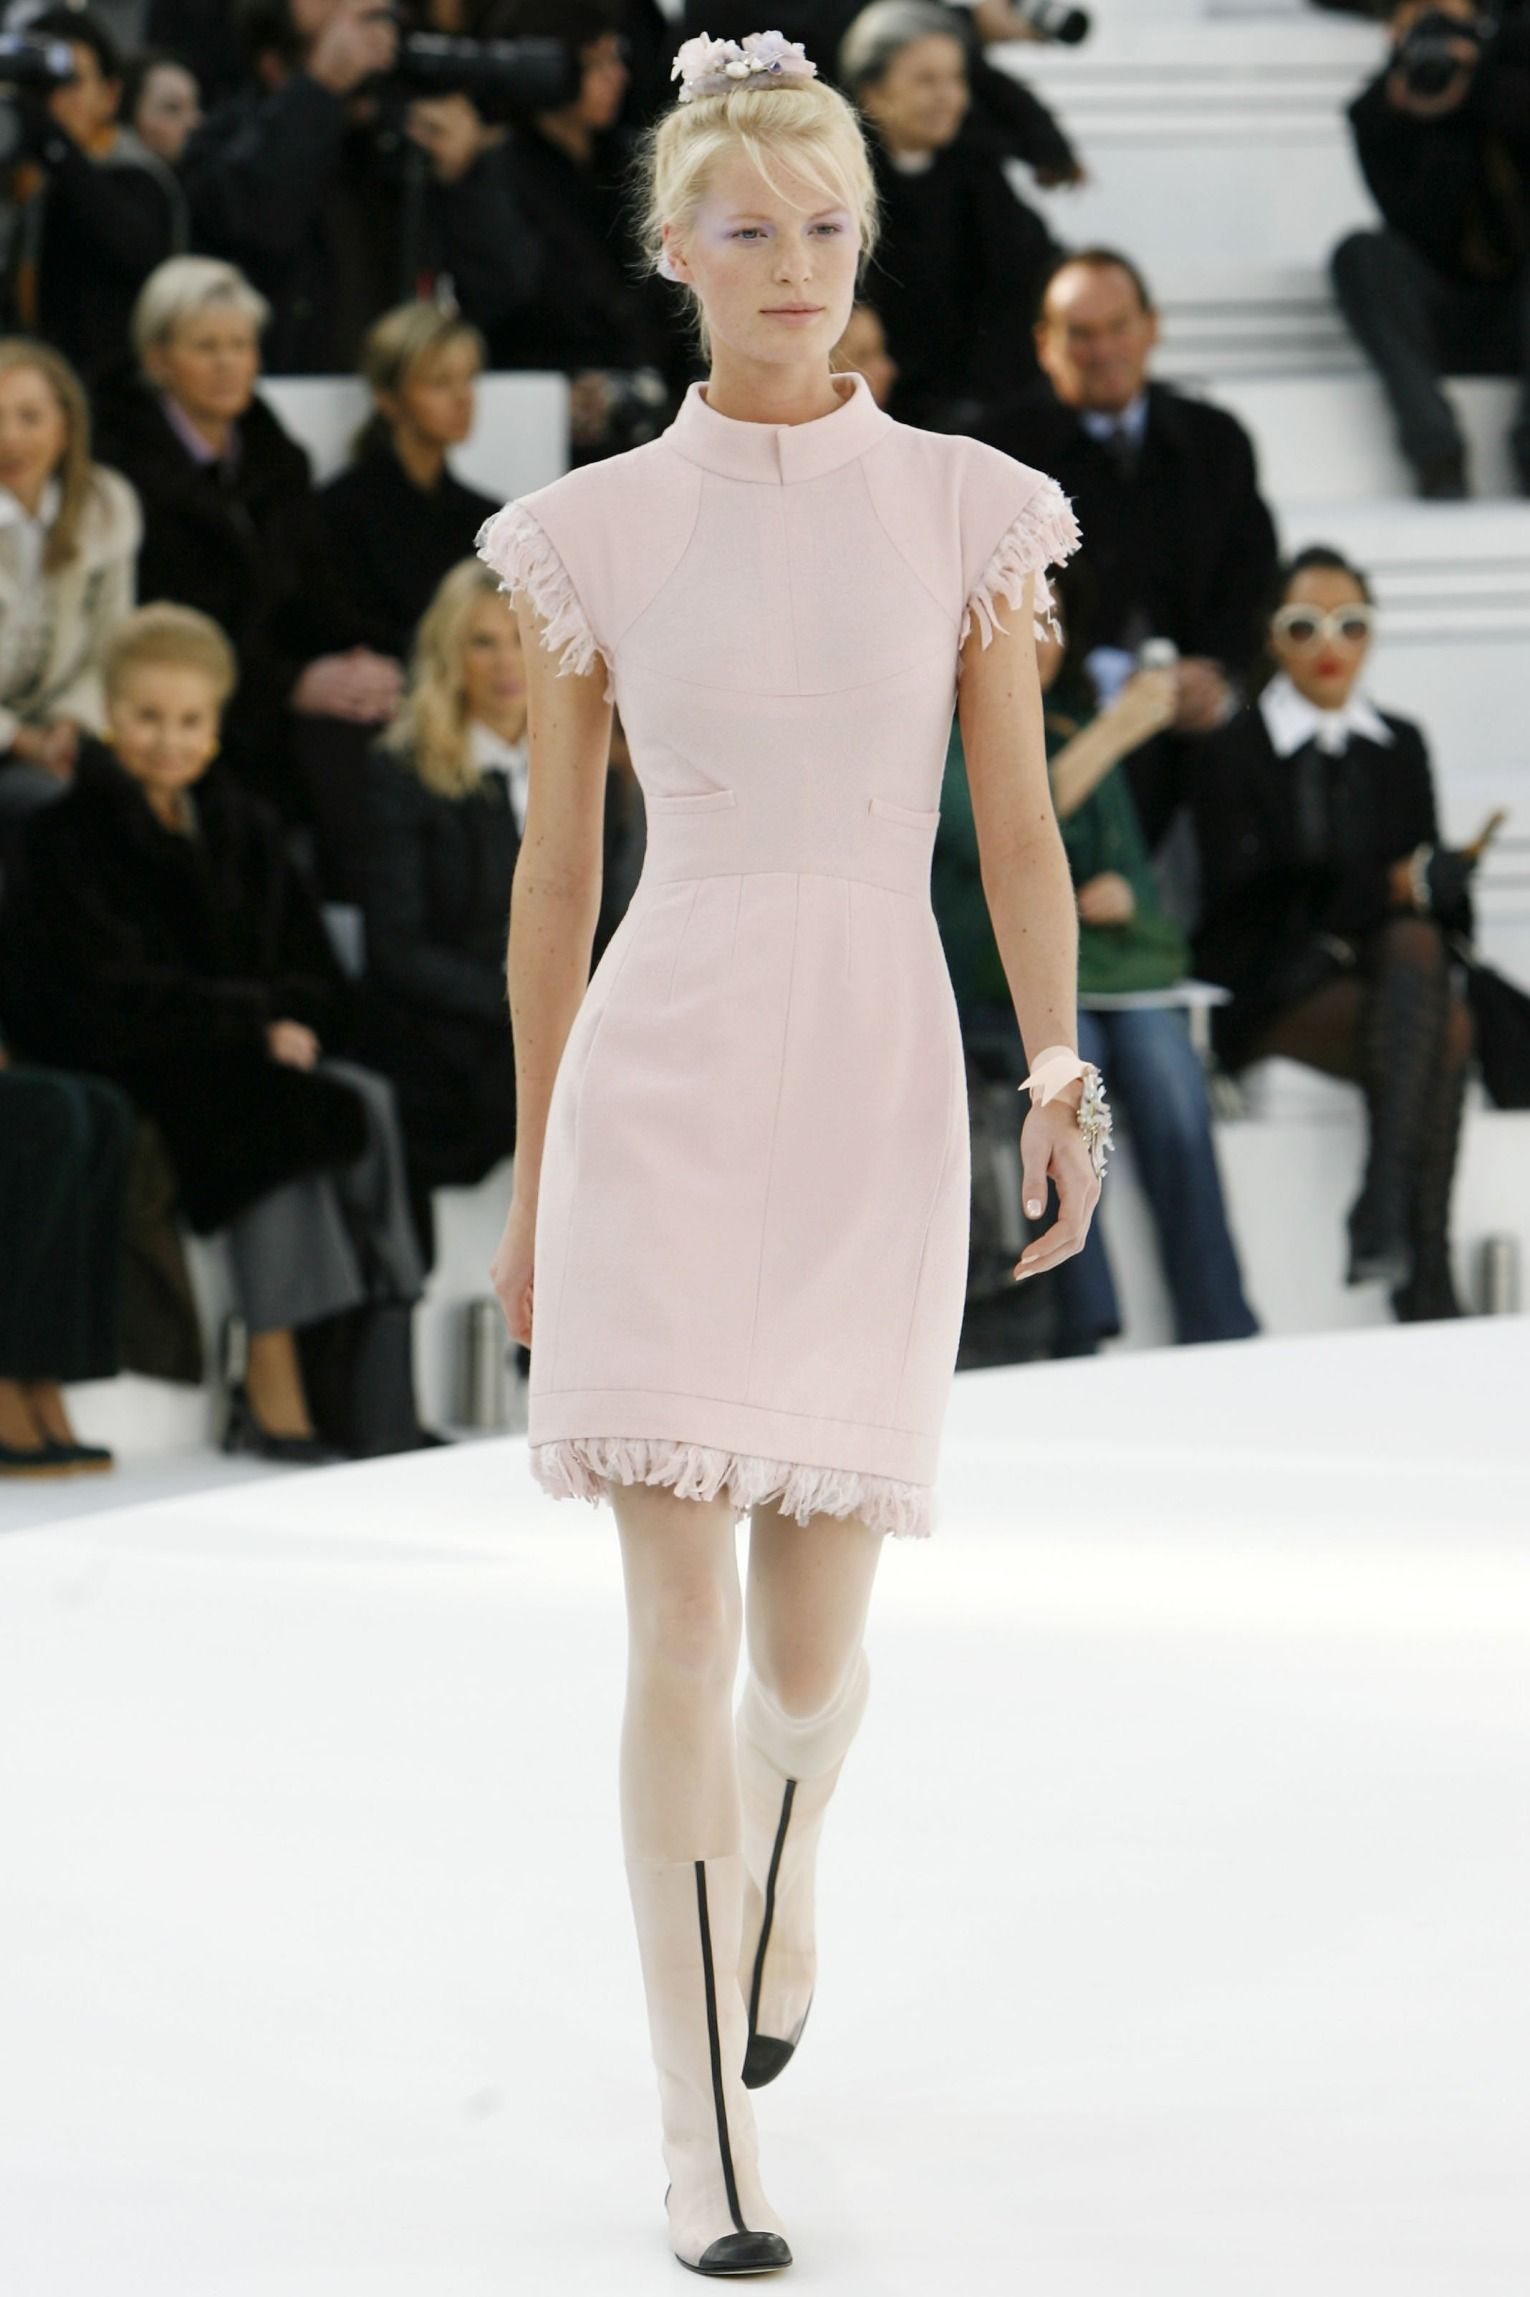 Chanel Spring 2006 Haute Couture